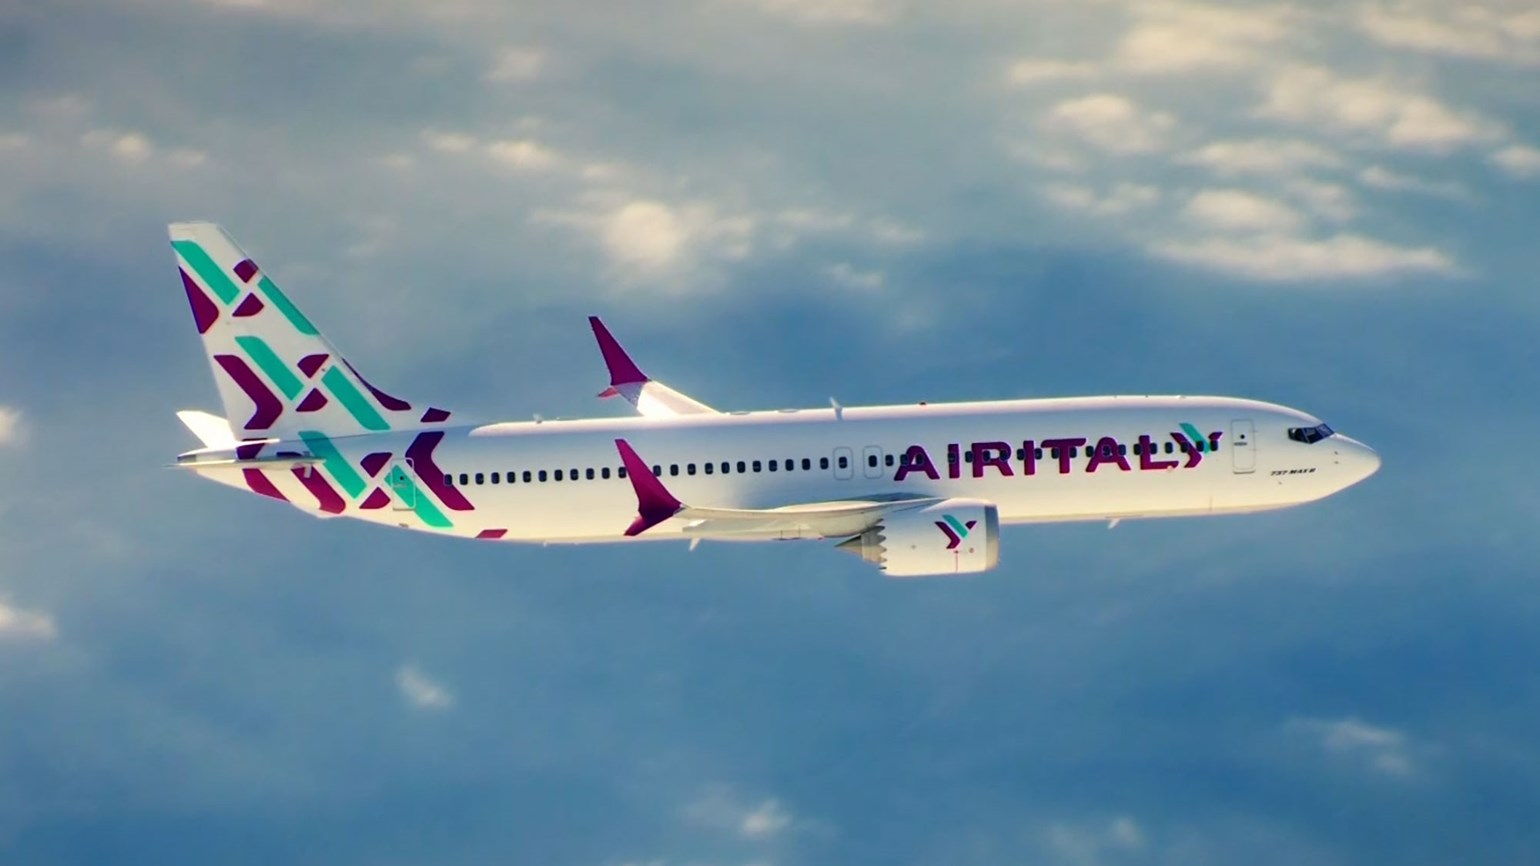 Meridiana is now Air Italy